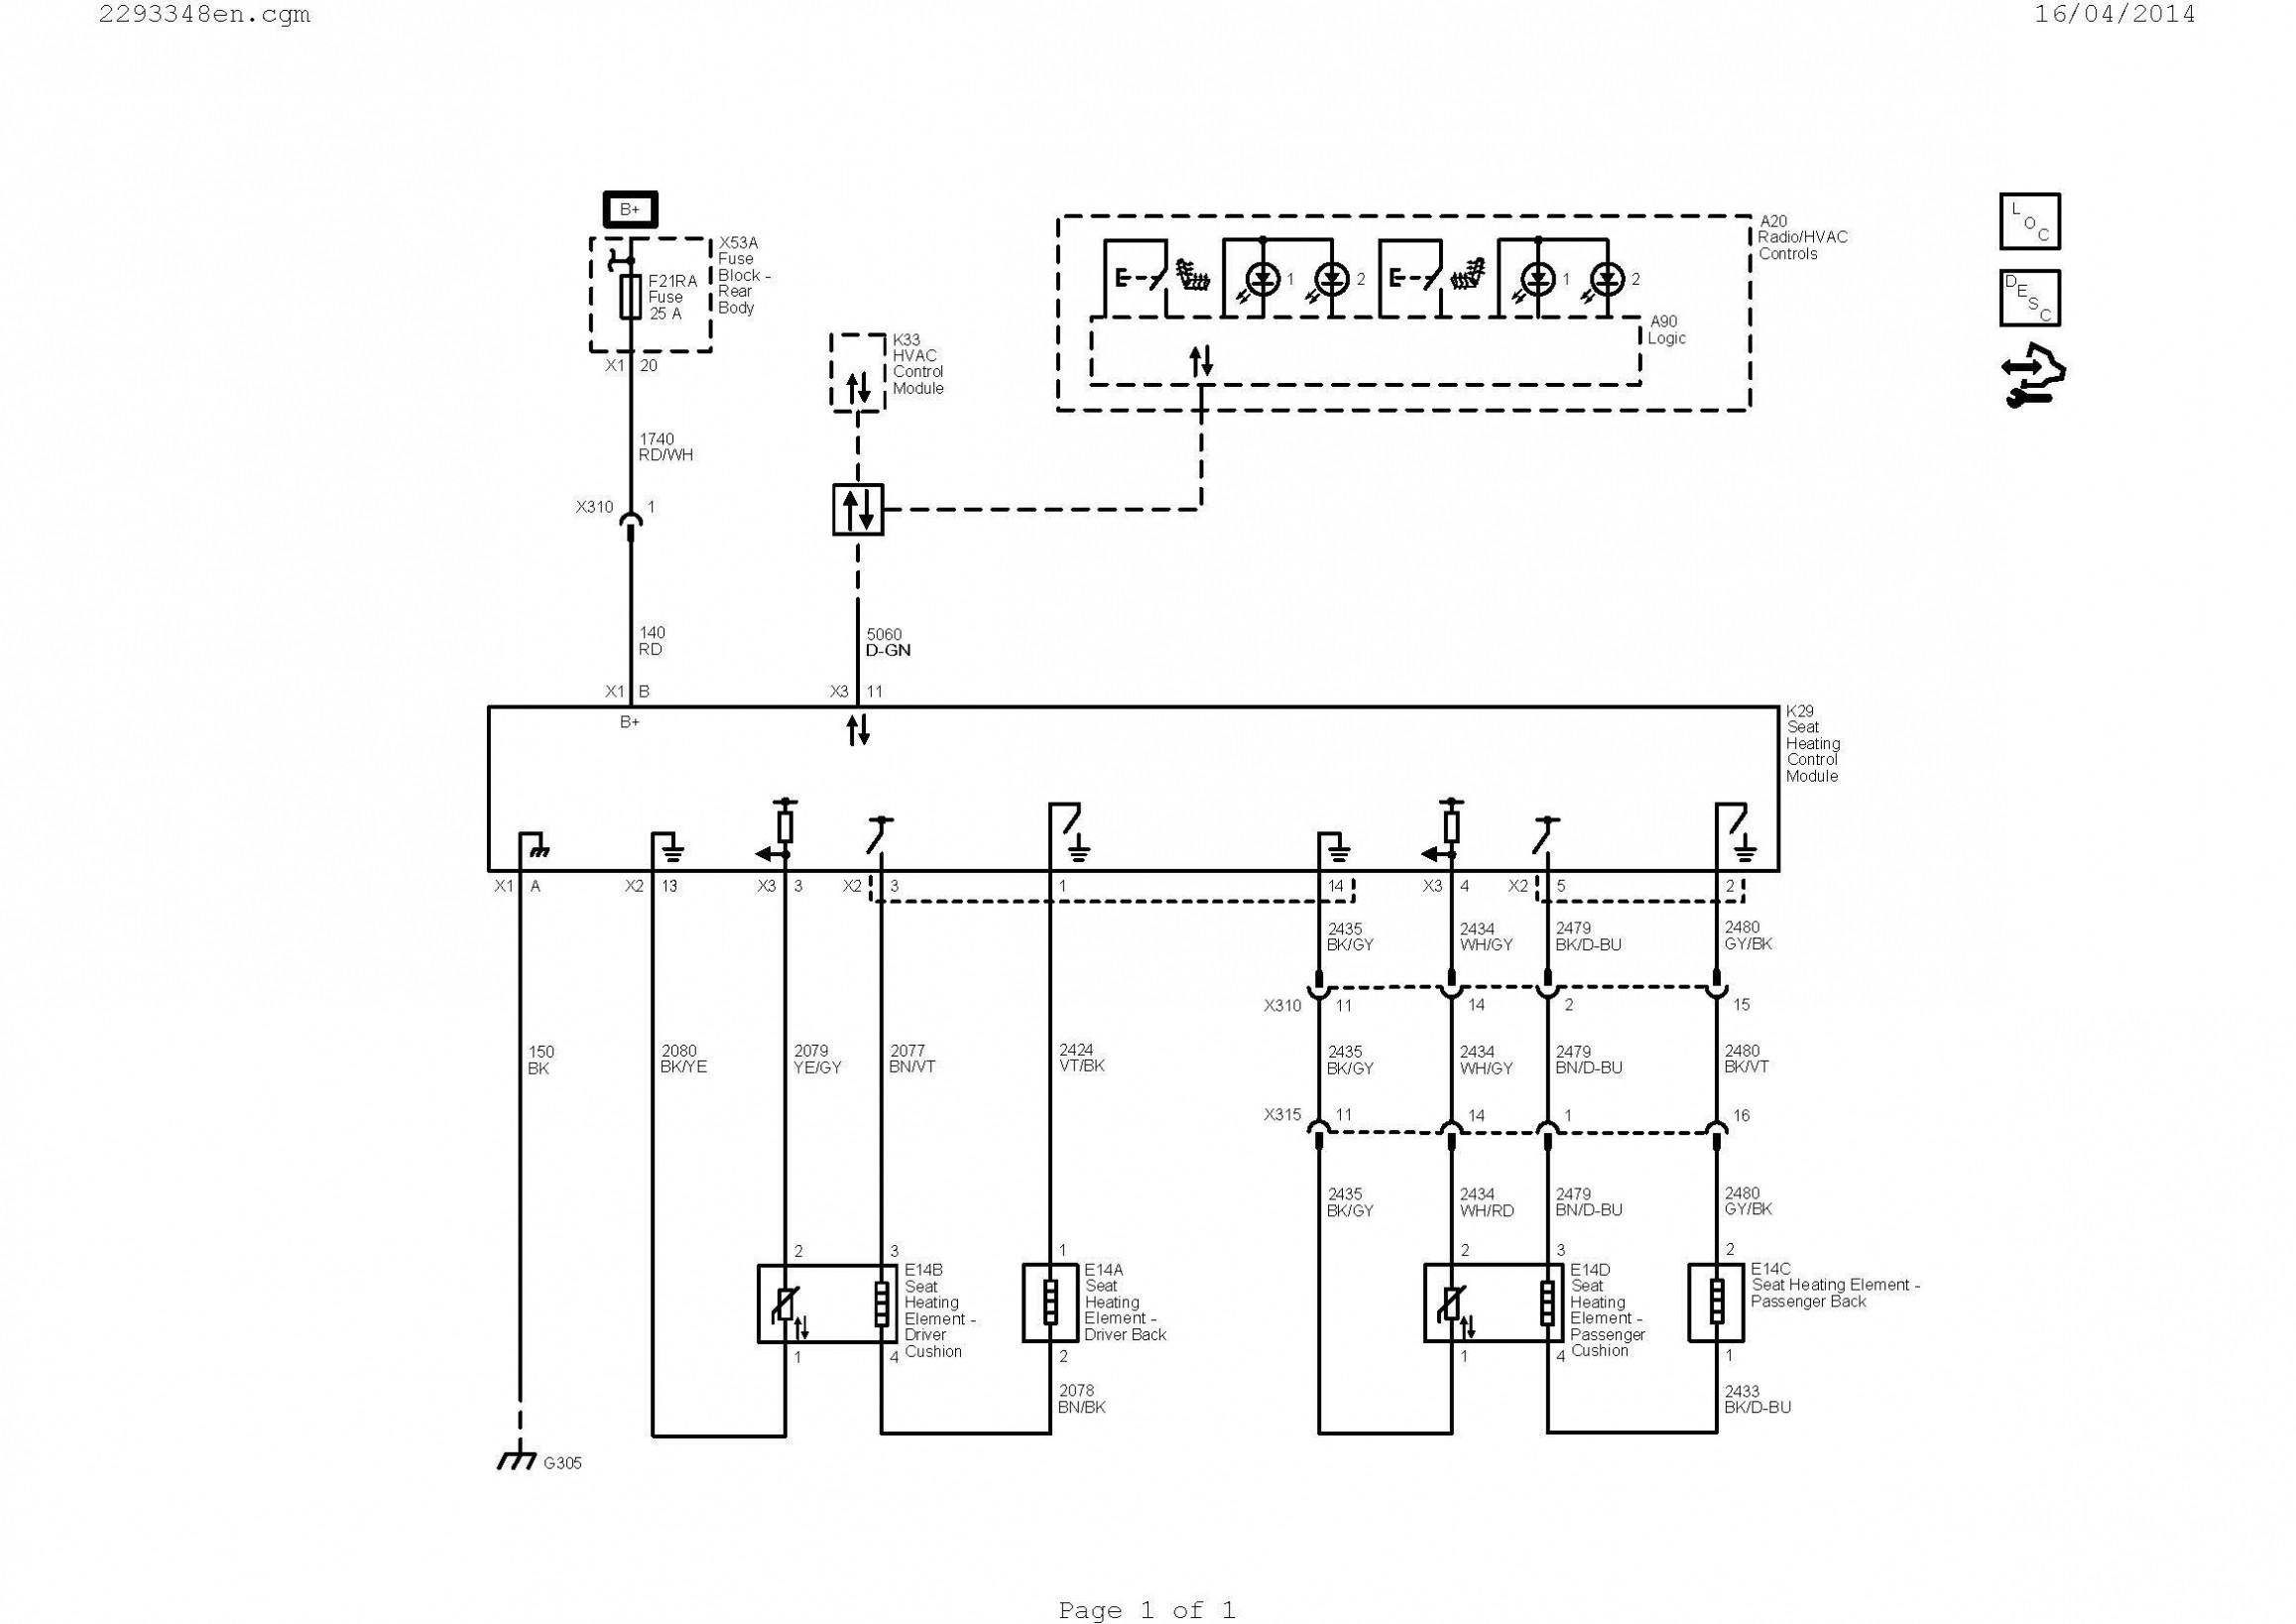 W Engine Diagram Inspirational F Road Light Wiring Diagram with Relay • Electrical Of W Engine Diagram